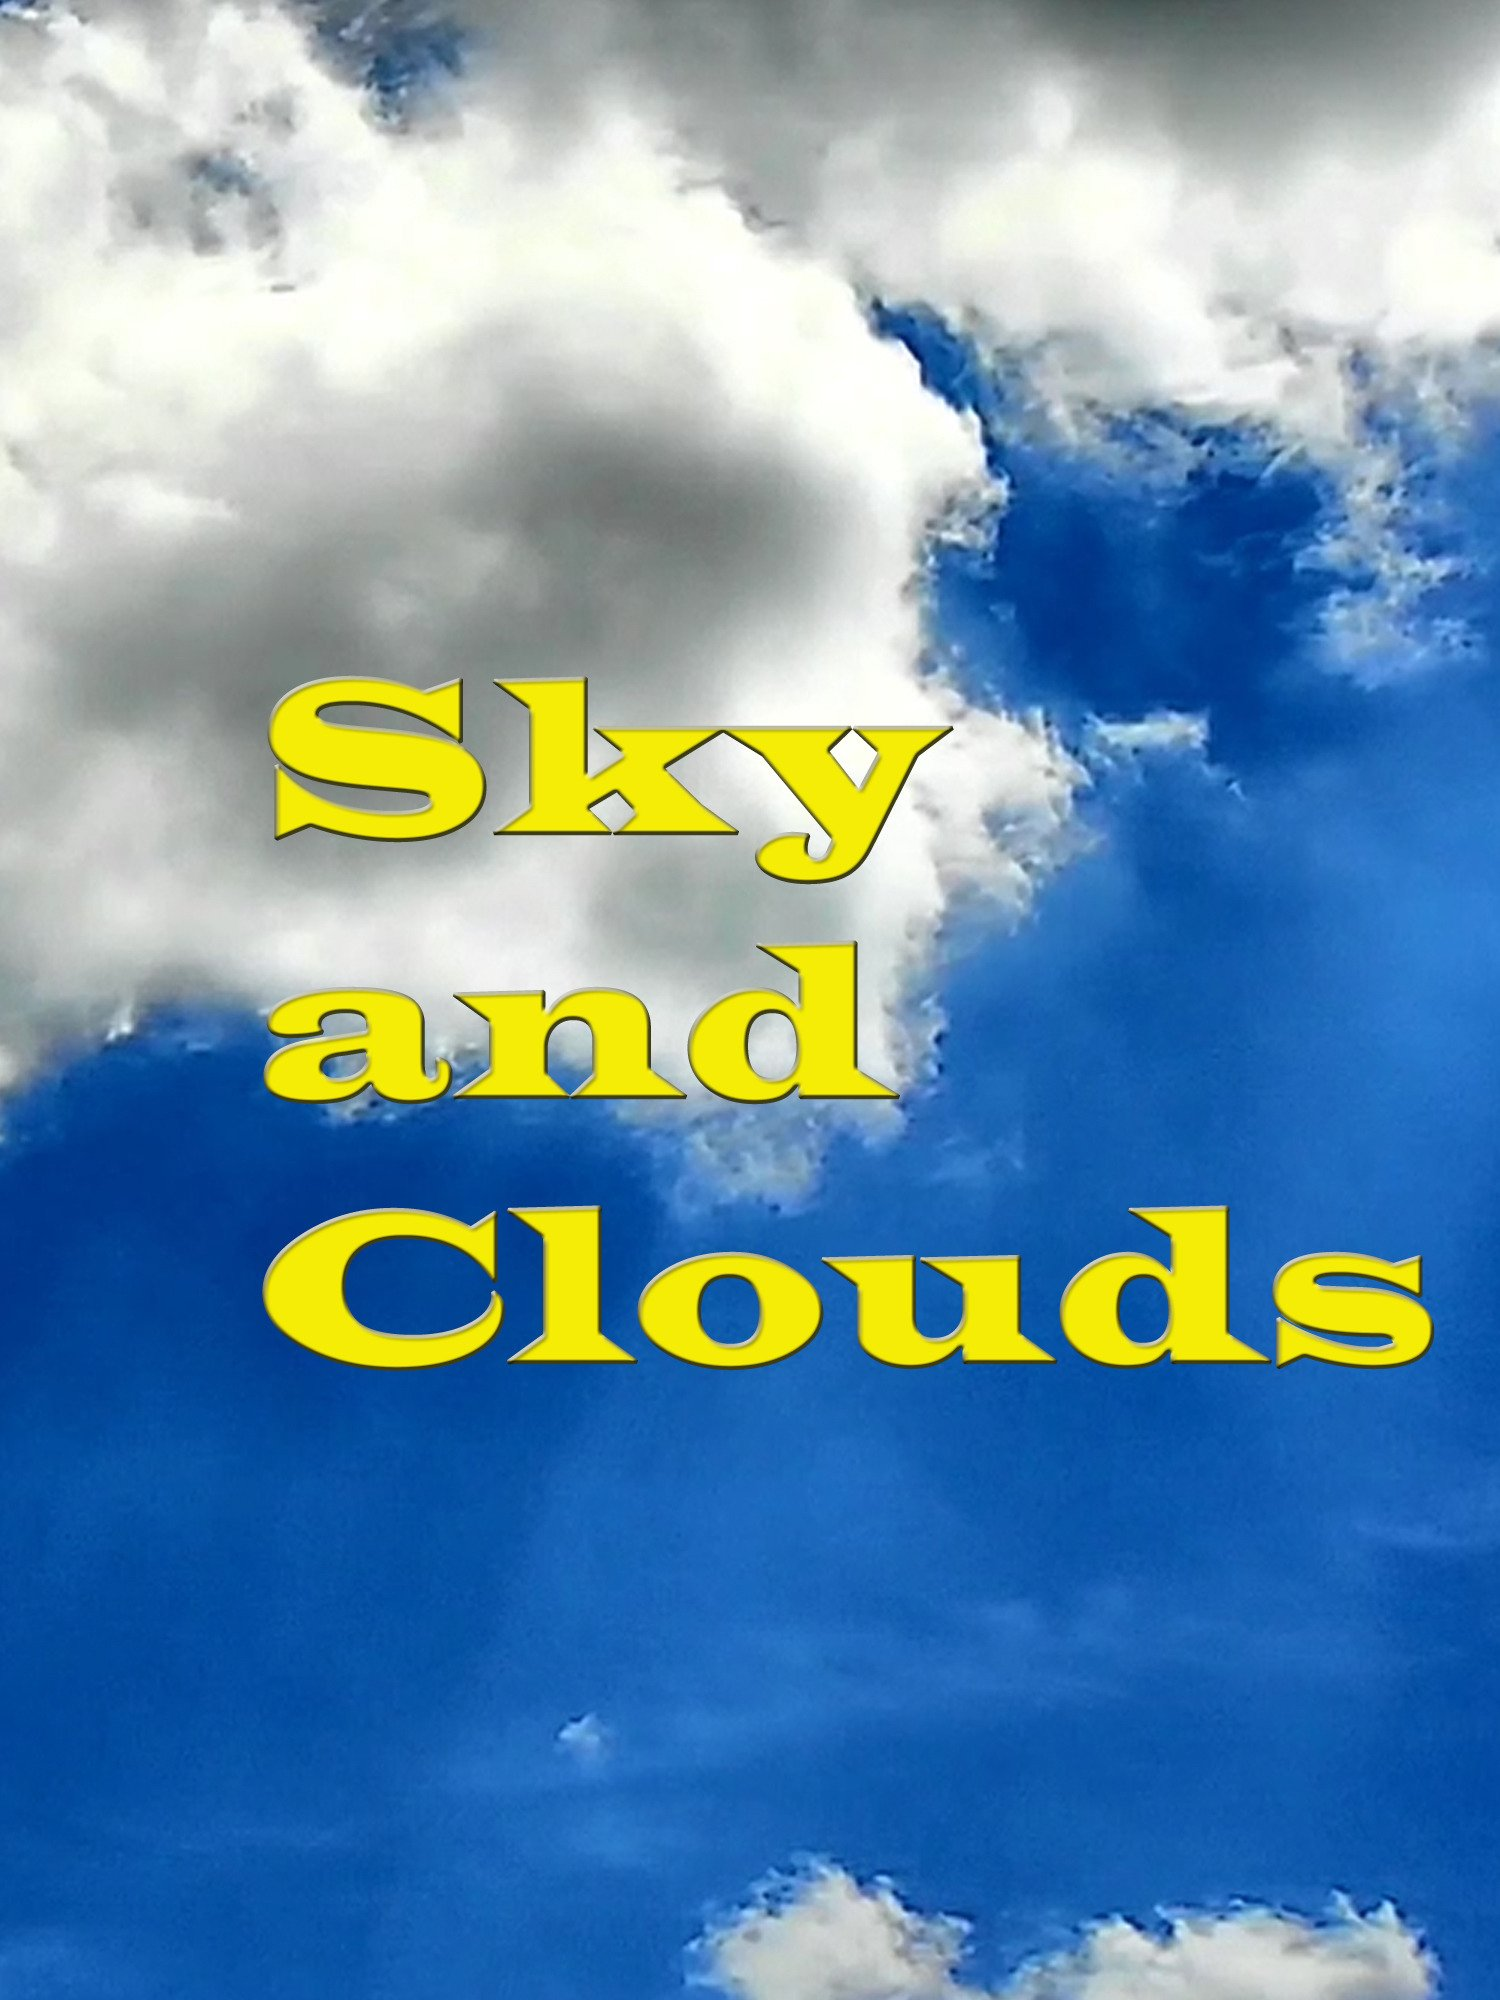 Clip: Sky and Clouds